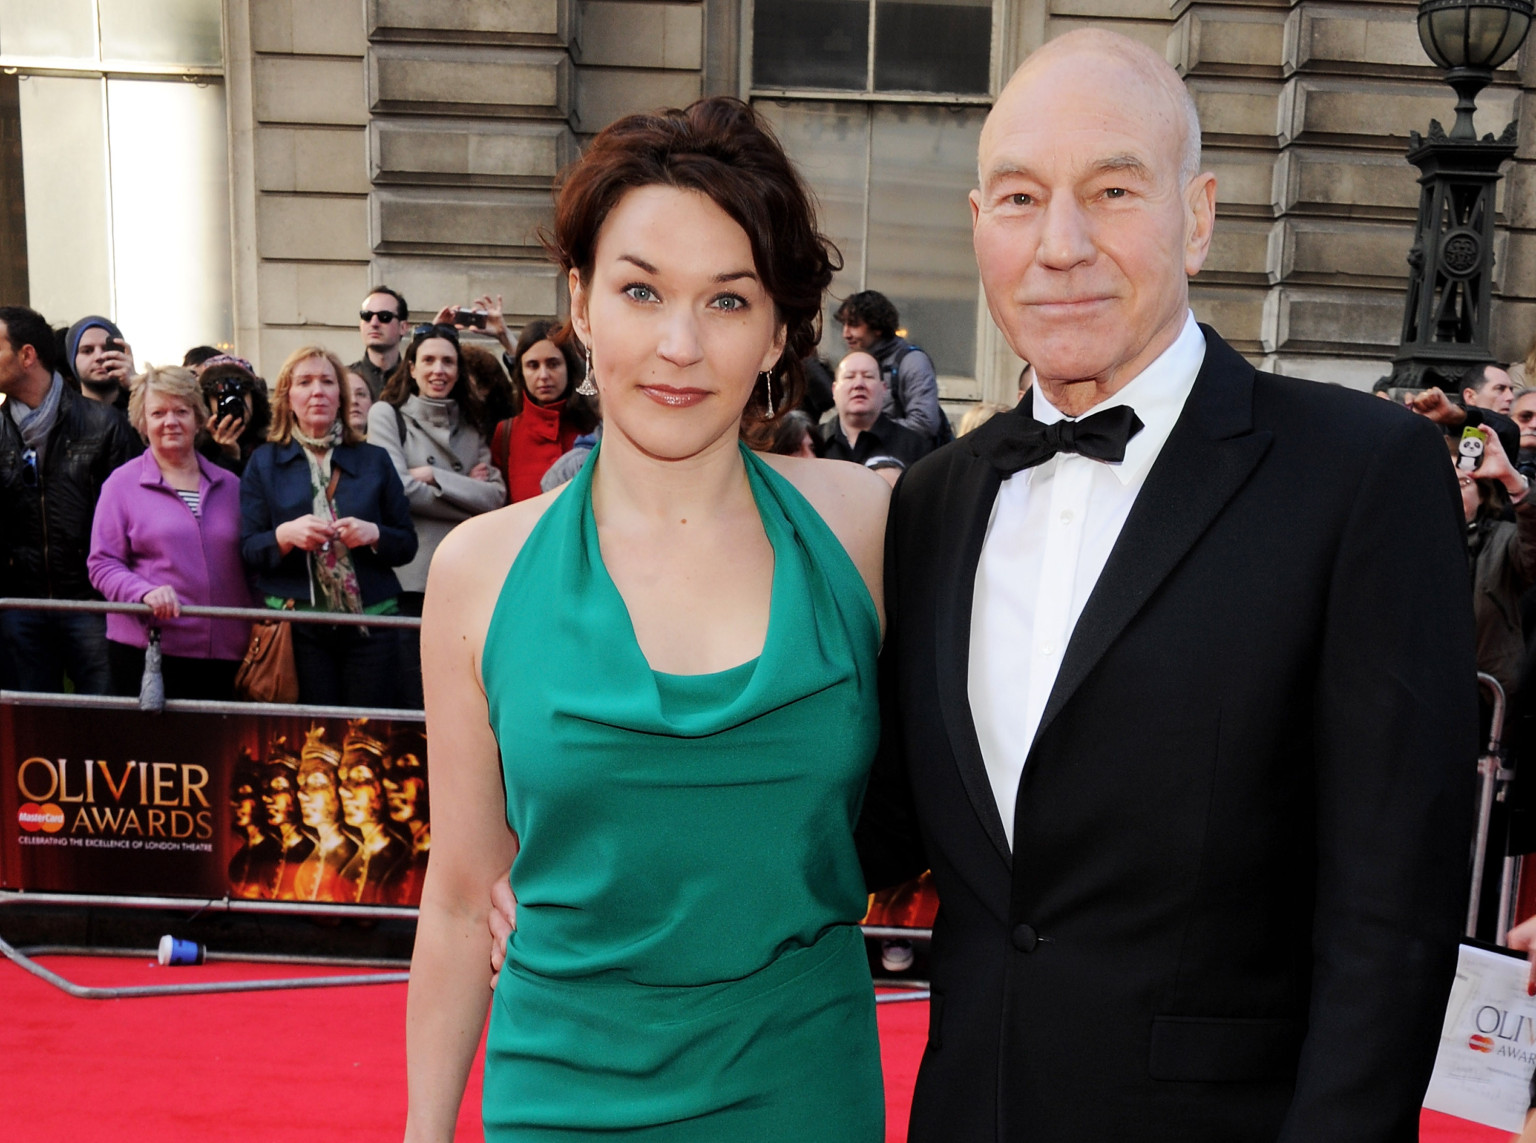 Current husband and wife couple: Patrick Stewart and Sunny Ozell